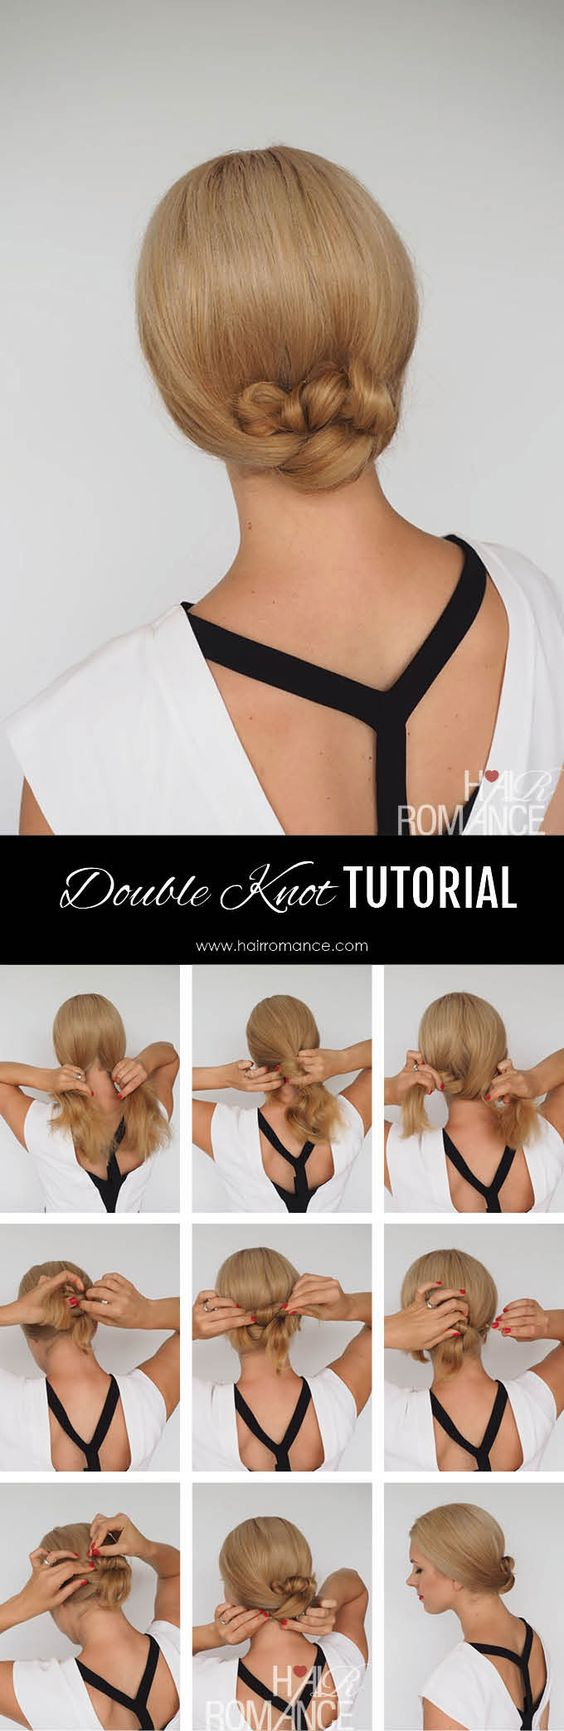 wedding-hairstyle-tutorial-3-02102016-km